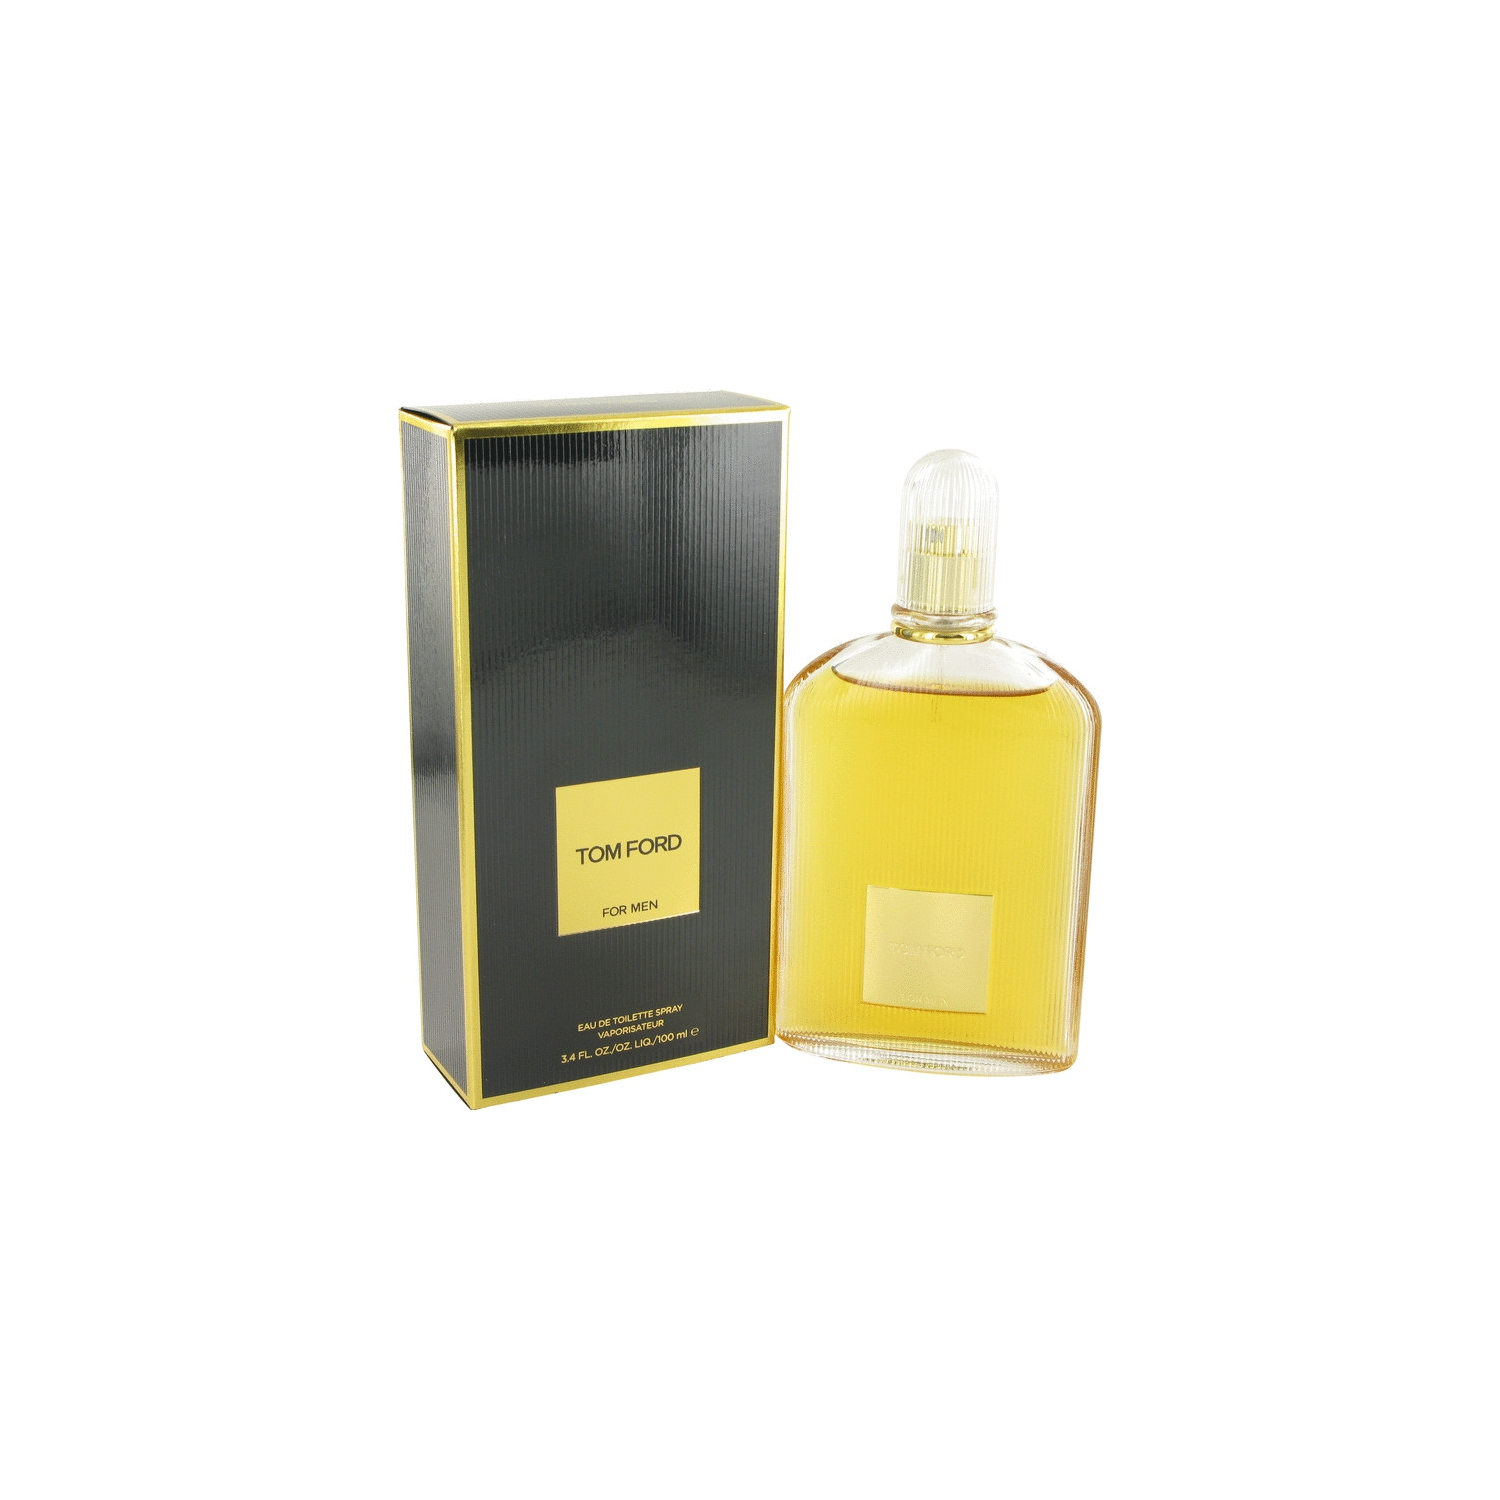 Tom Ford Man 100ml Boxed Scents Fragrances Best Buy Canada